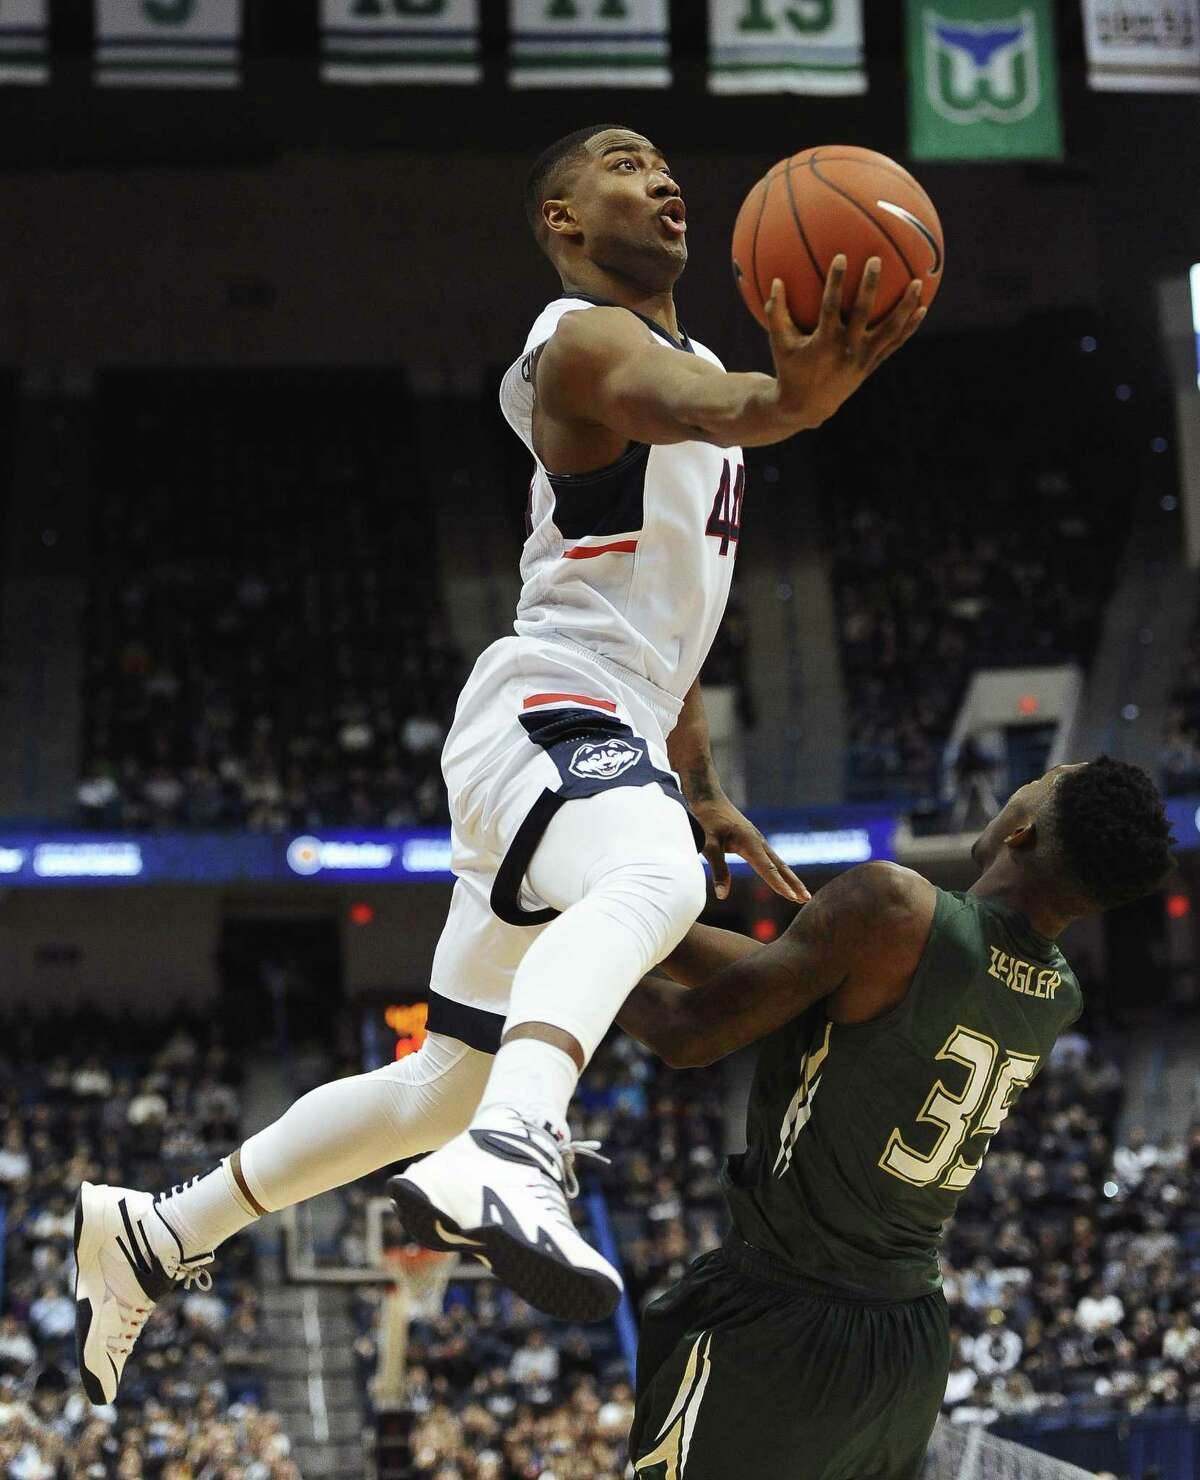 UConn's Rodney Purvis, left, got the start over Kentan Facey in the second half of Wednesday's win over East Carolina.